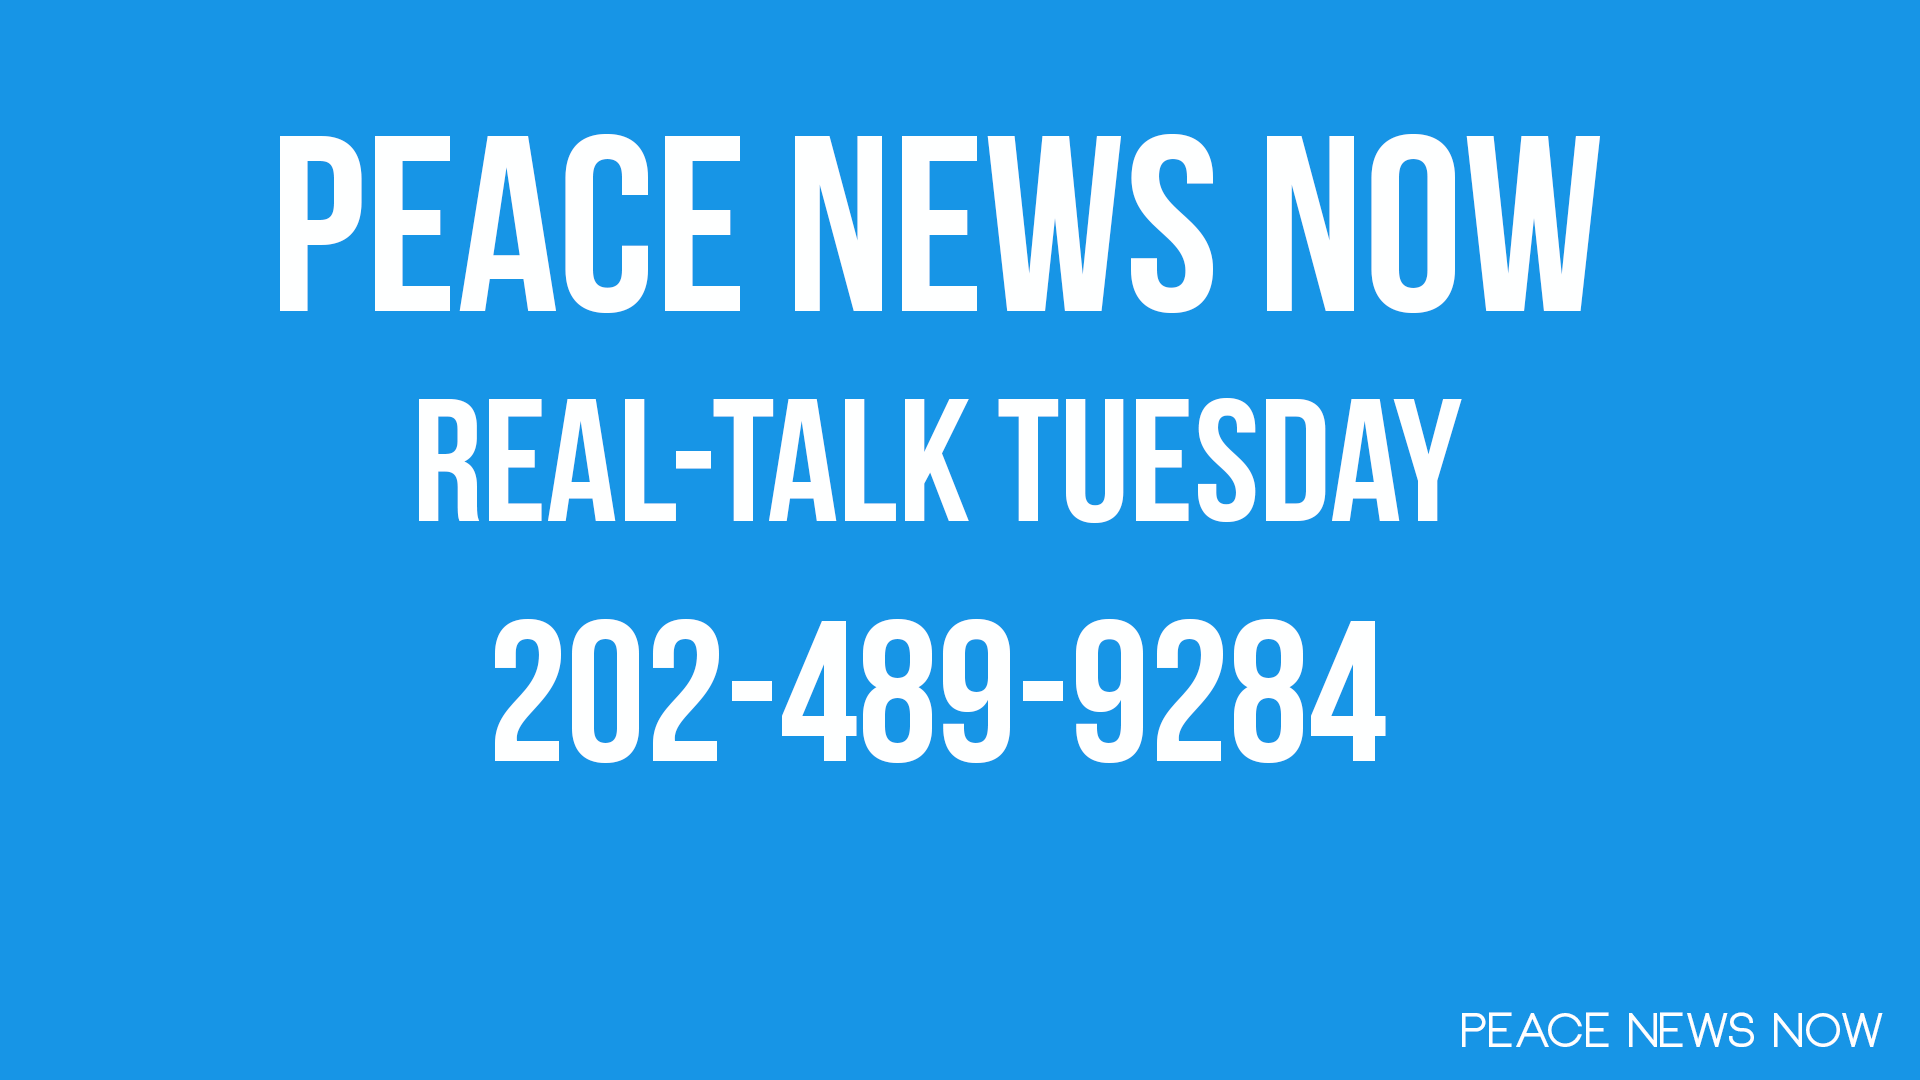 PNN Live Real-Talk Tuesday 2013-07-16